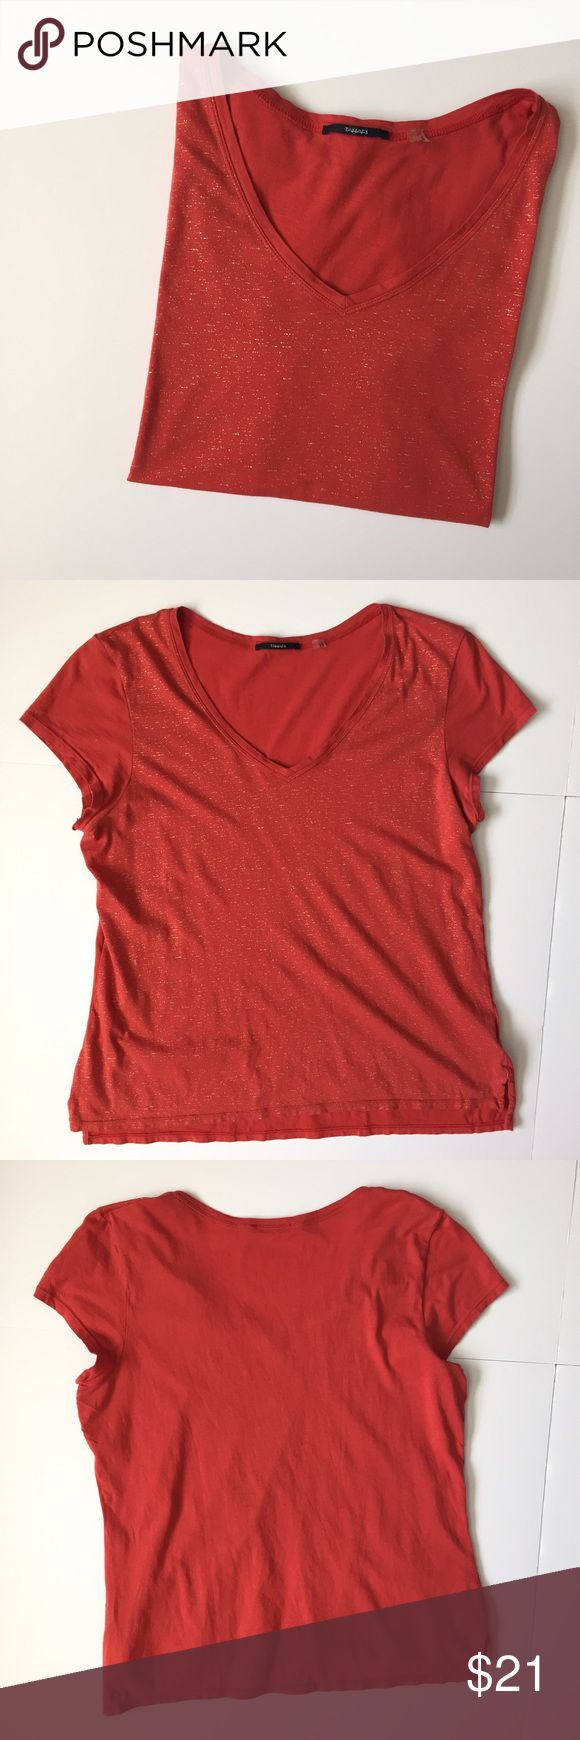 """Tahari Red & Gold Short Sleeve Top Burnt Red colored short sleeve top with Gold fleck pattern on the front. 100% cotton. About 23"""" long, 19 1/2"""" pit to pit. Has a very small discolored dot on the right shoulder but wouldn't show up in the picture. Otherwise, shirt is in great condition. NO TRADES. Tahari Tops Tees - Short Sleeve"""